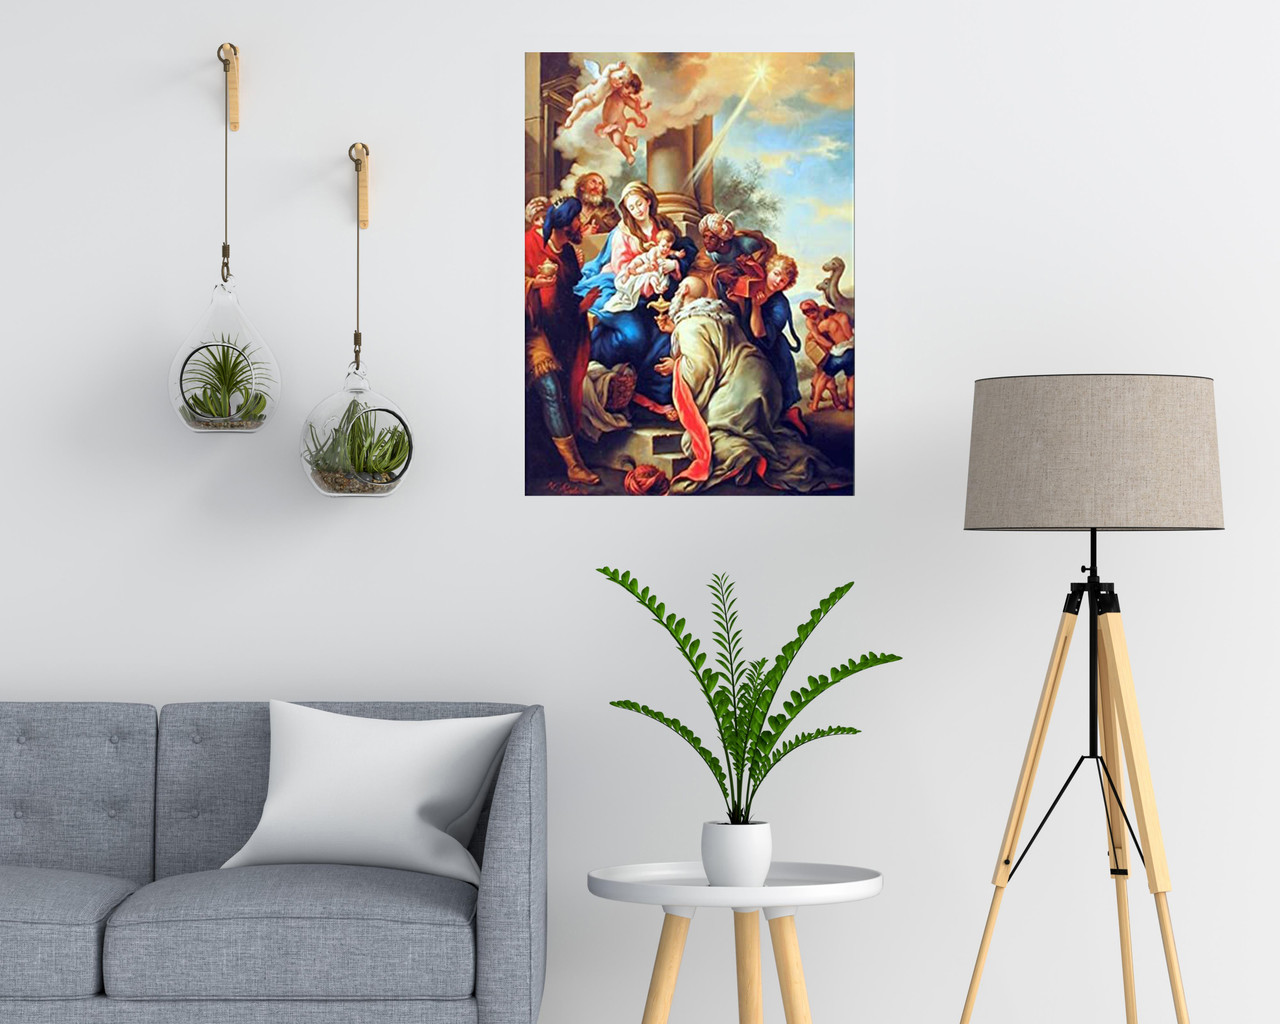 Mary with Child Ruben Religious Christian Wall Decor Art Print Poster  (16x20) - Impact Posters Gallery